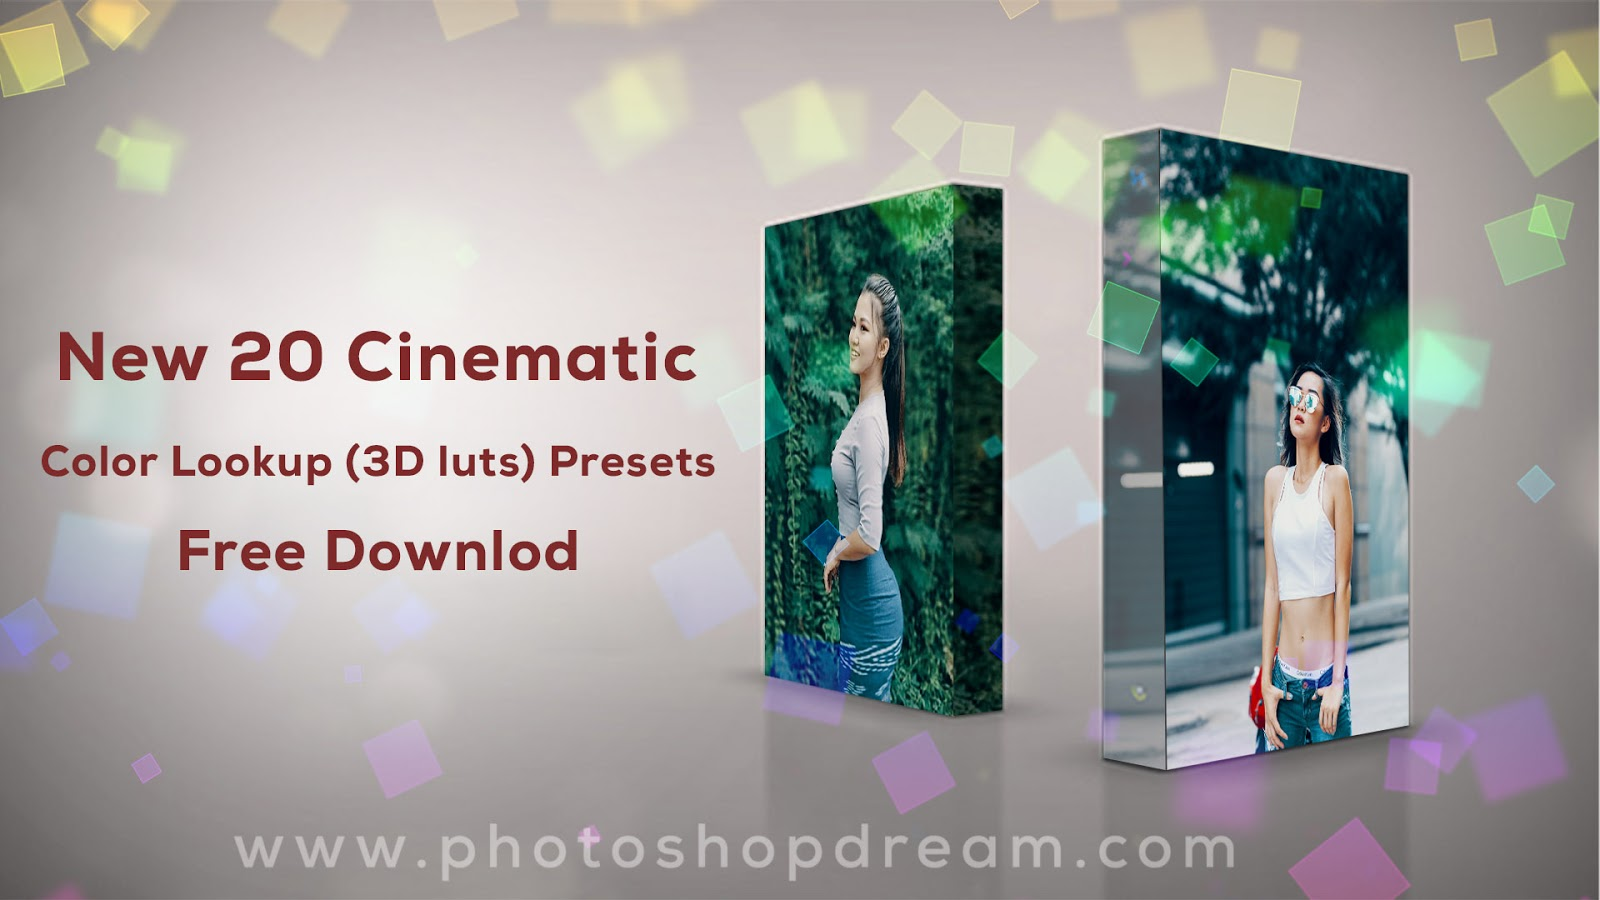 New 20 Cinematic Color Lookup (3D luts) Presets for Photoshop